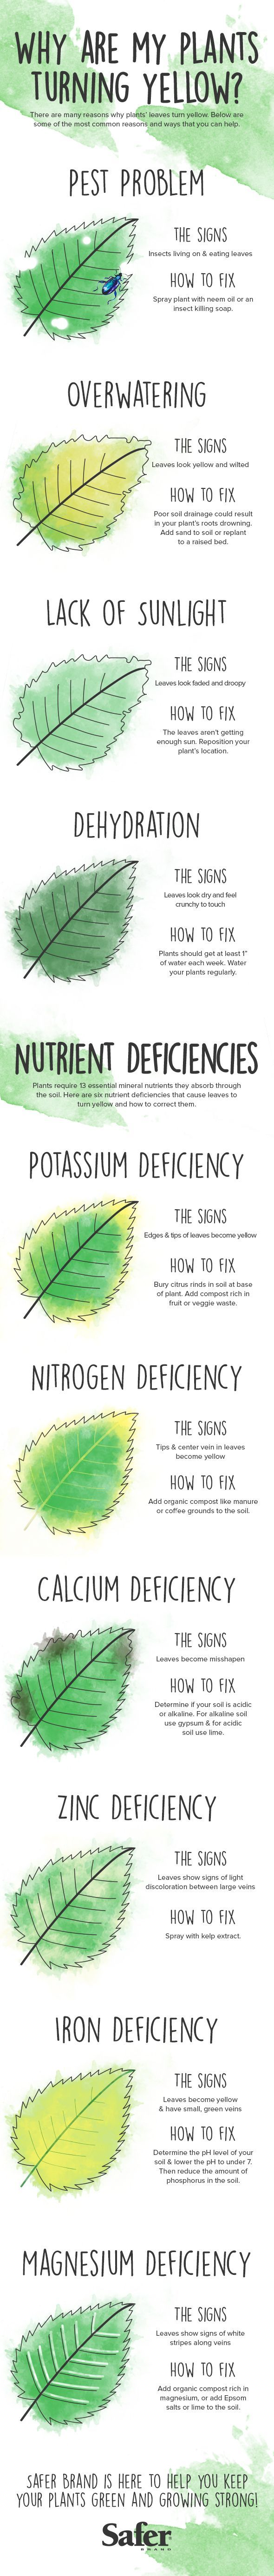 Why Are My Plants Leaves Turning Yellow Trouble Shooting Common Problems… | http://www.ecosnippets.com/gardening/why-are-my-plants-leaves-turning-yellow-trouble-shooting-common-problems/